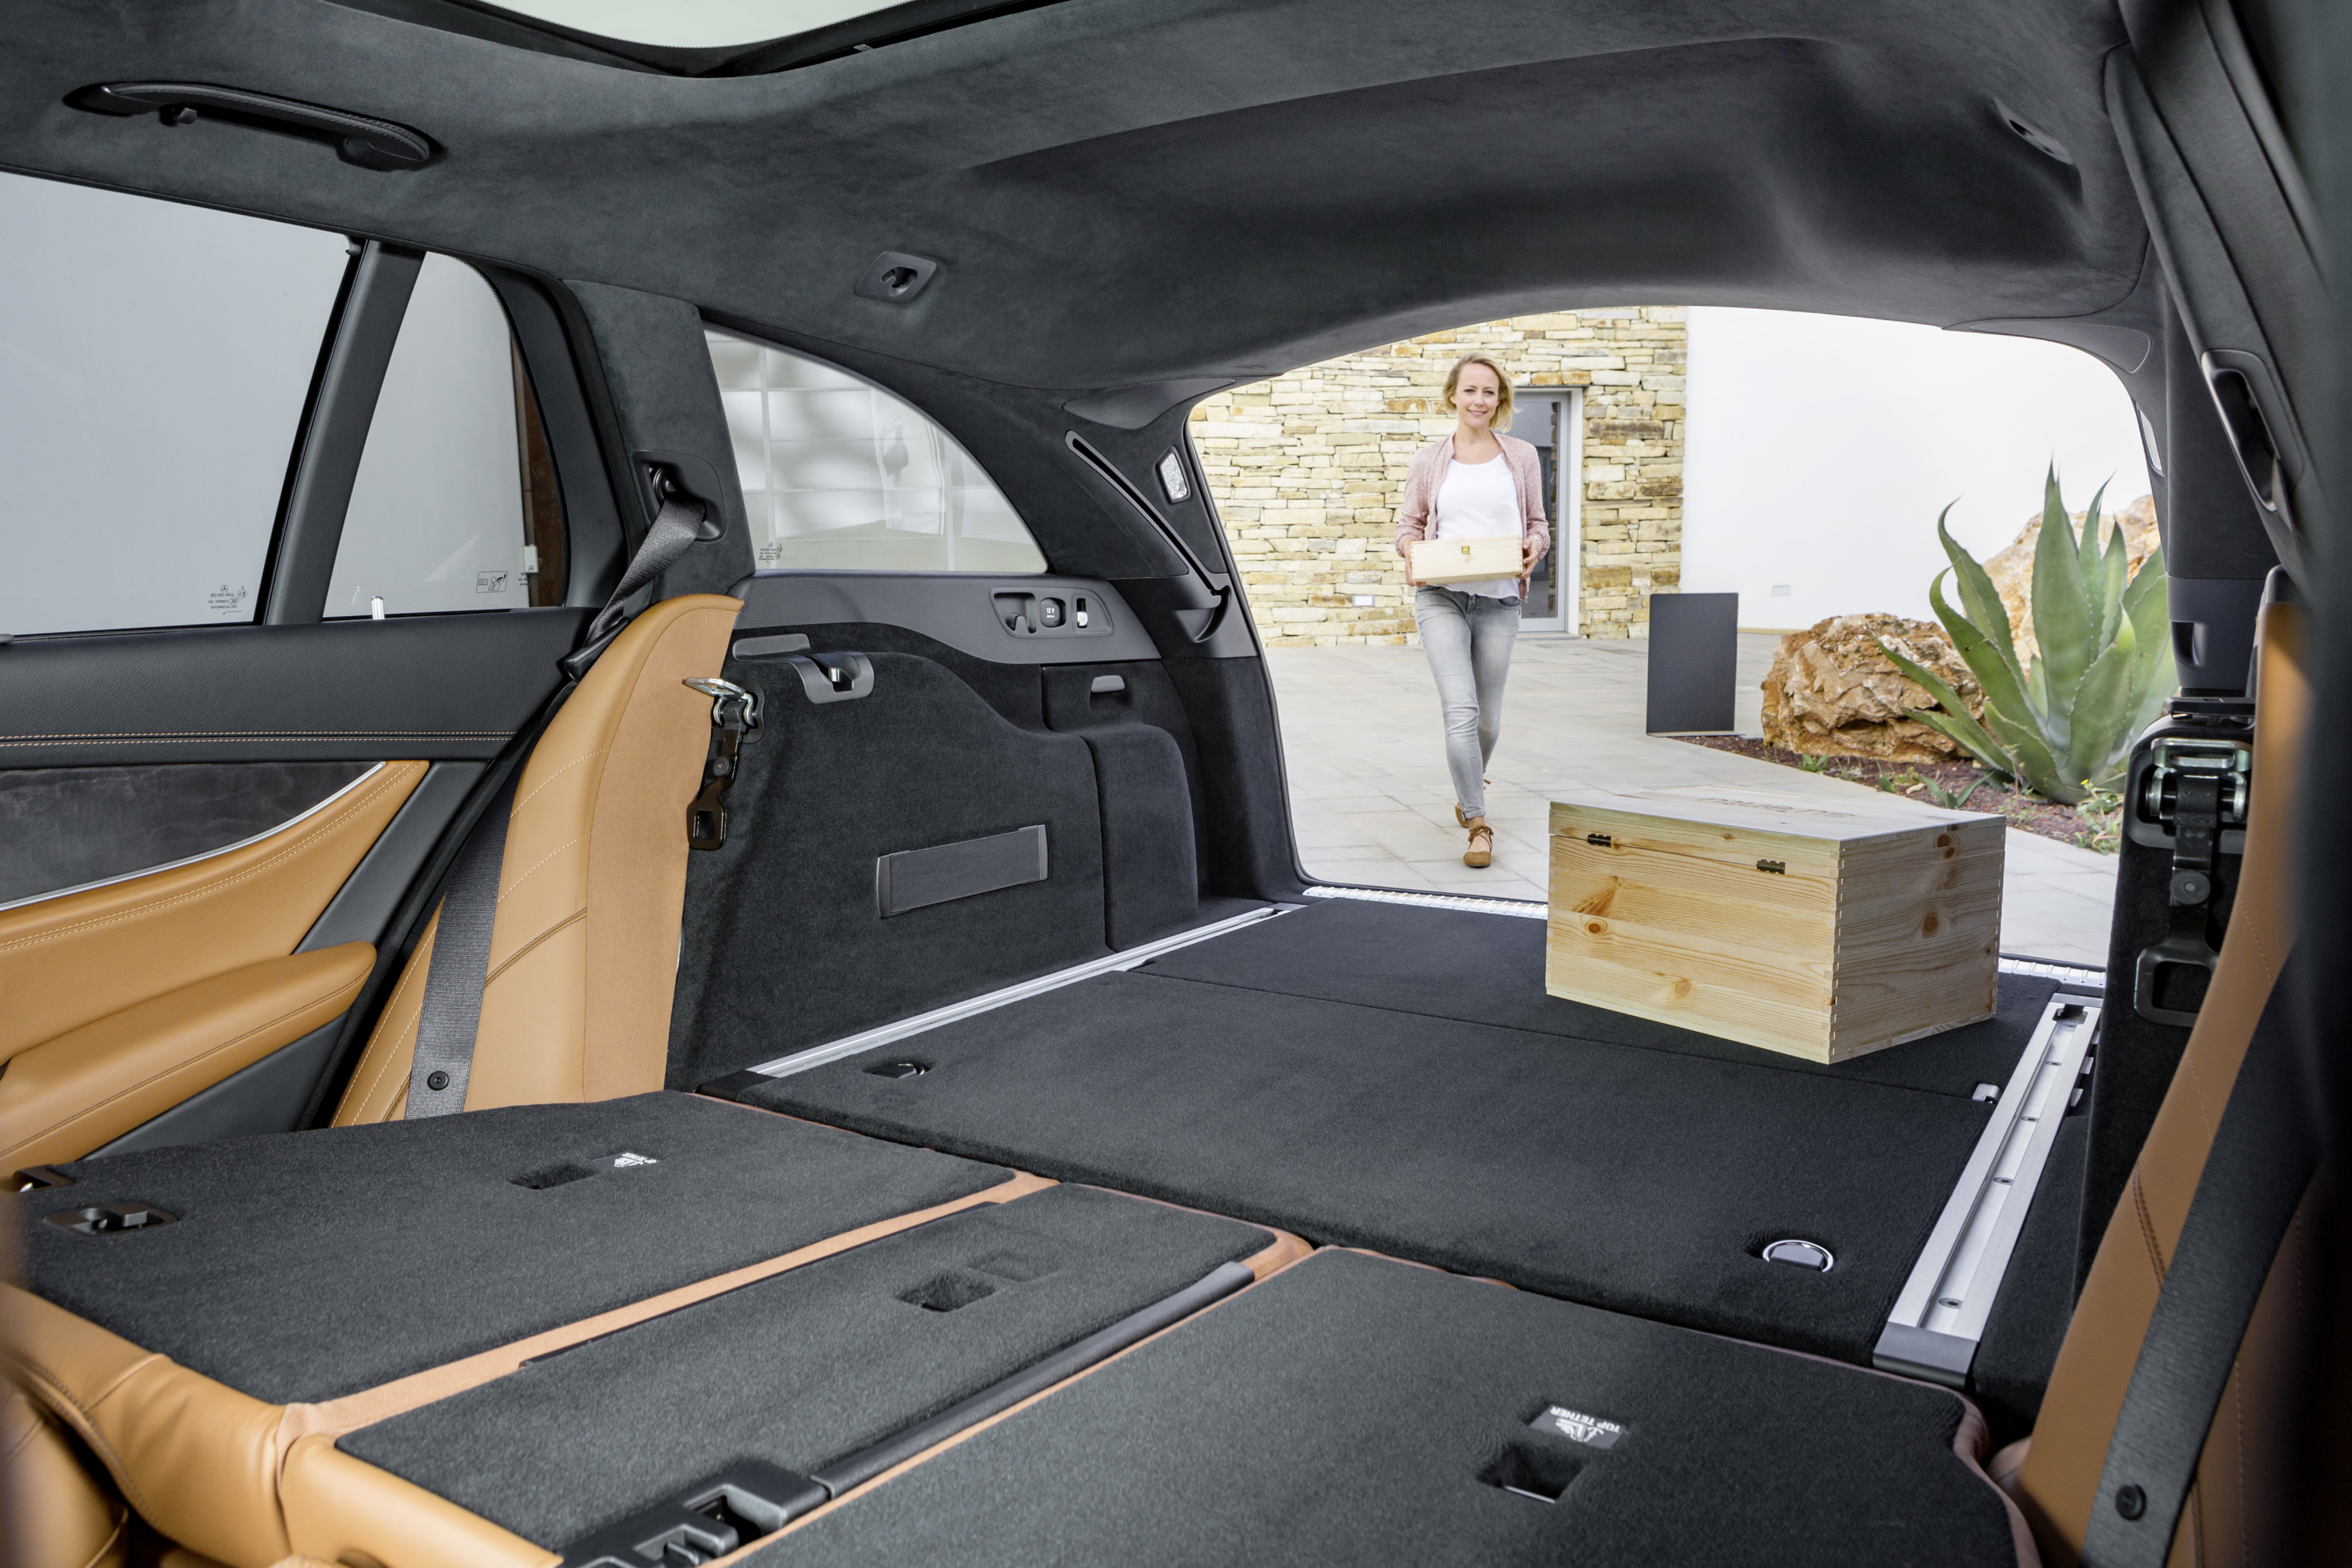 Mercedes-Benz E-Class: Folding bench seat in the cargo compartment (Wagon)